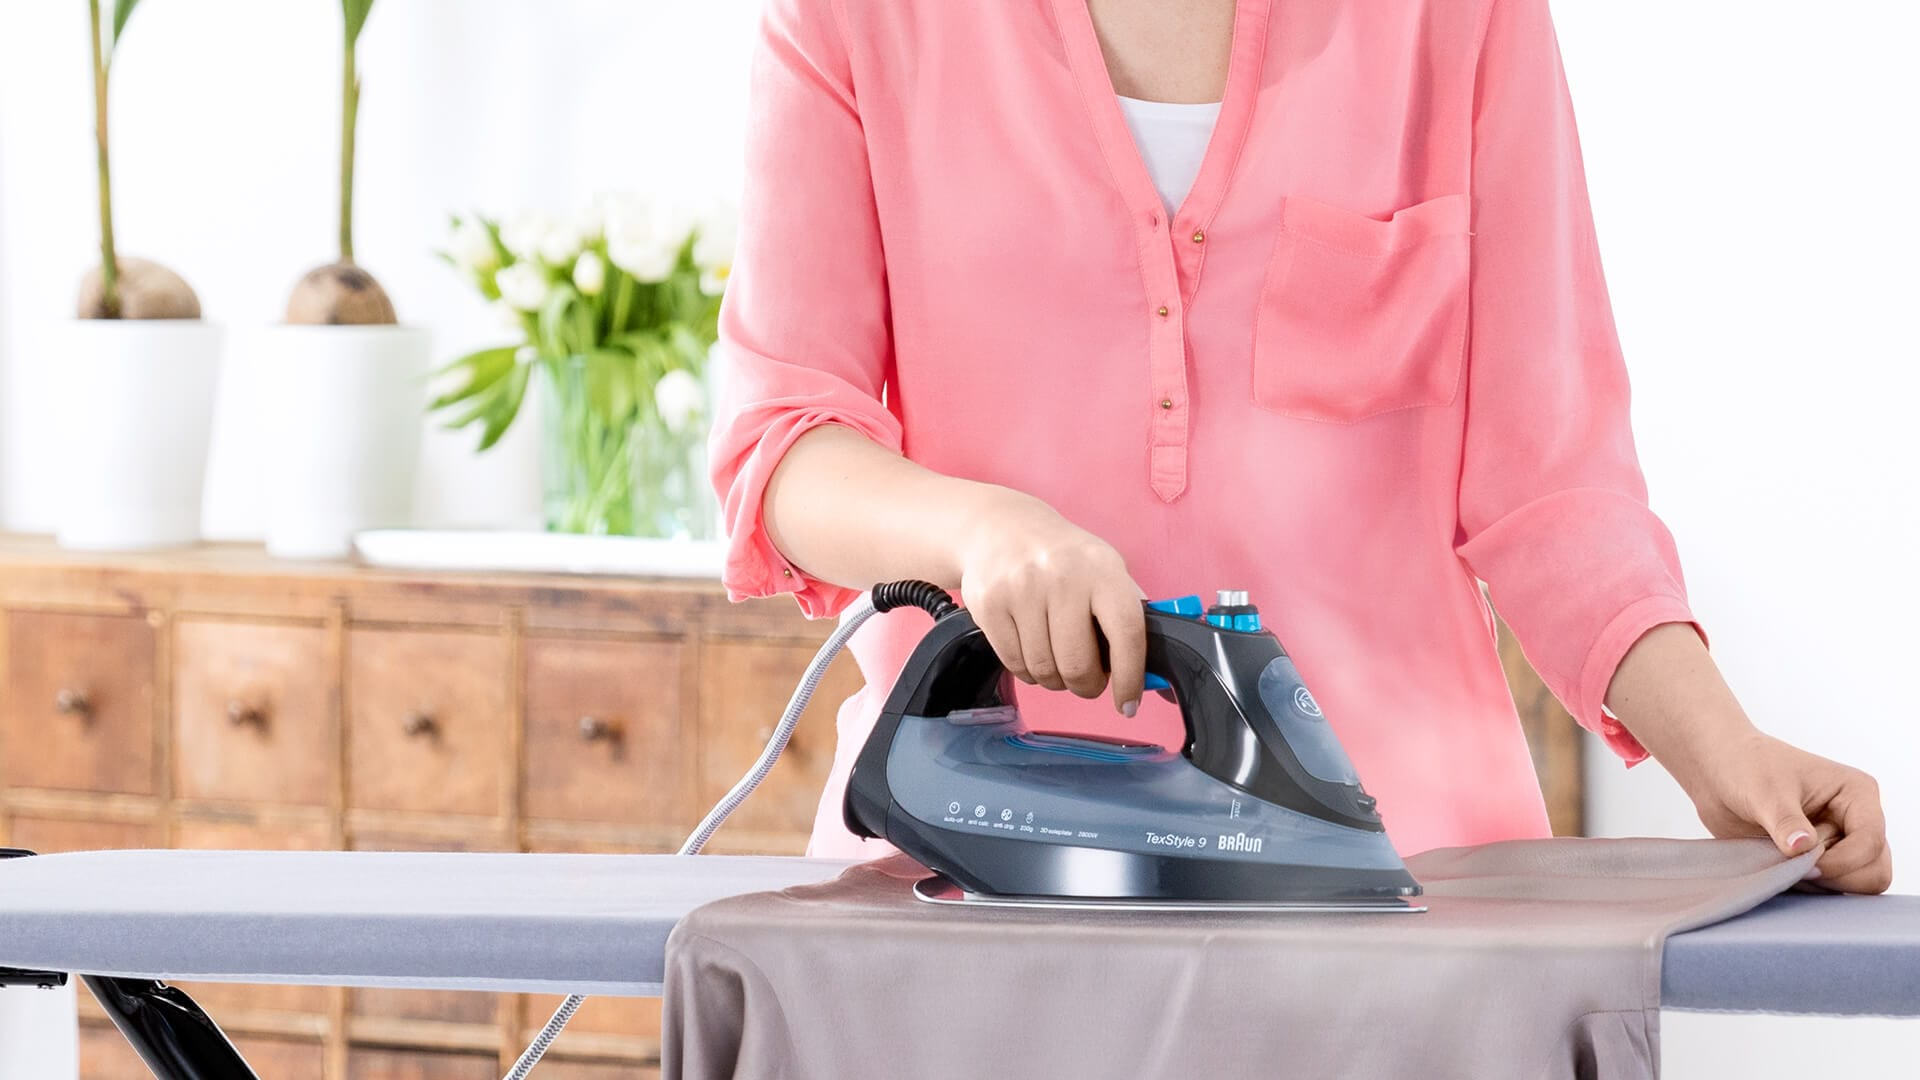 Braun TexStyle 9 Steam Iron in use